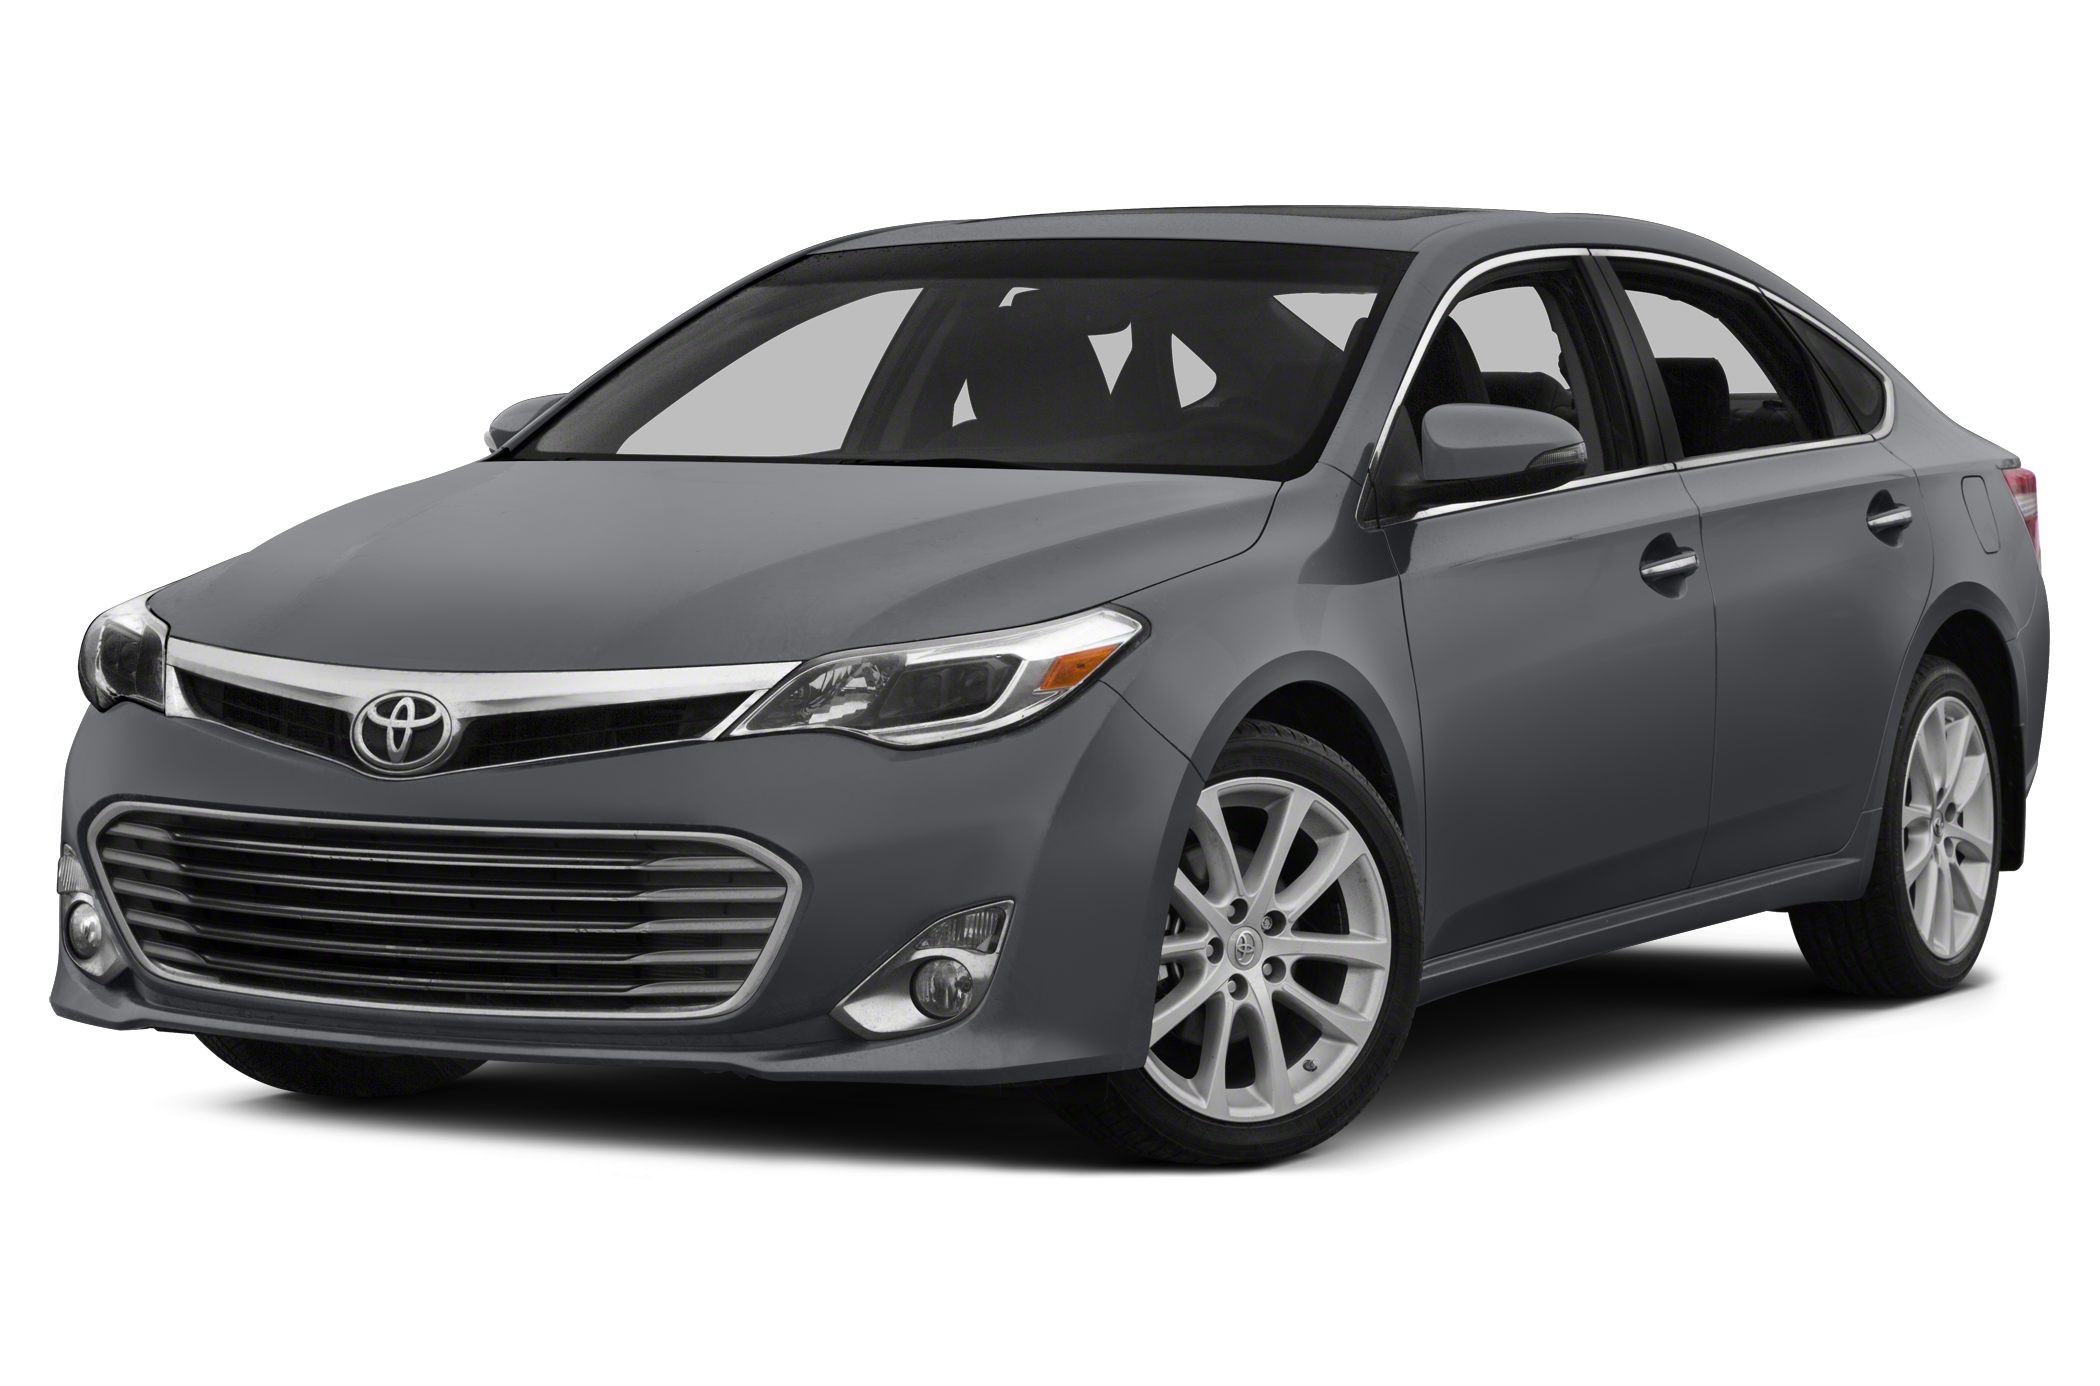 2015 Toyota Avalon Limited Sedan for sale in Allentown for $41,574 with 0 miles